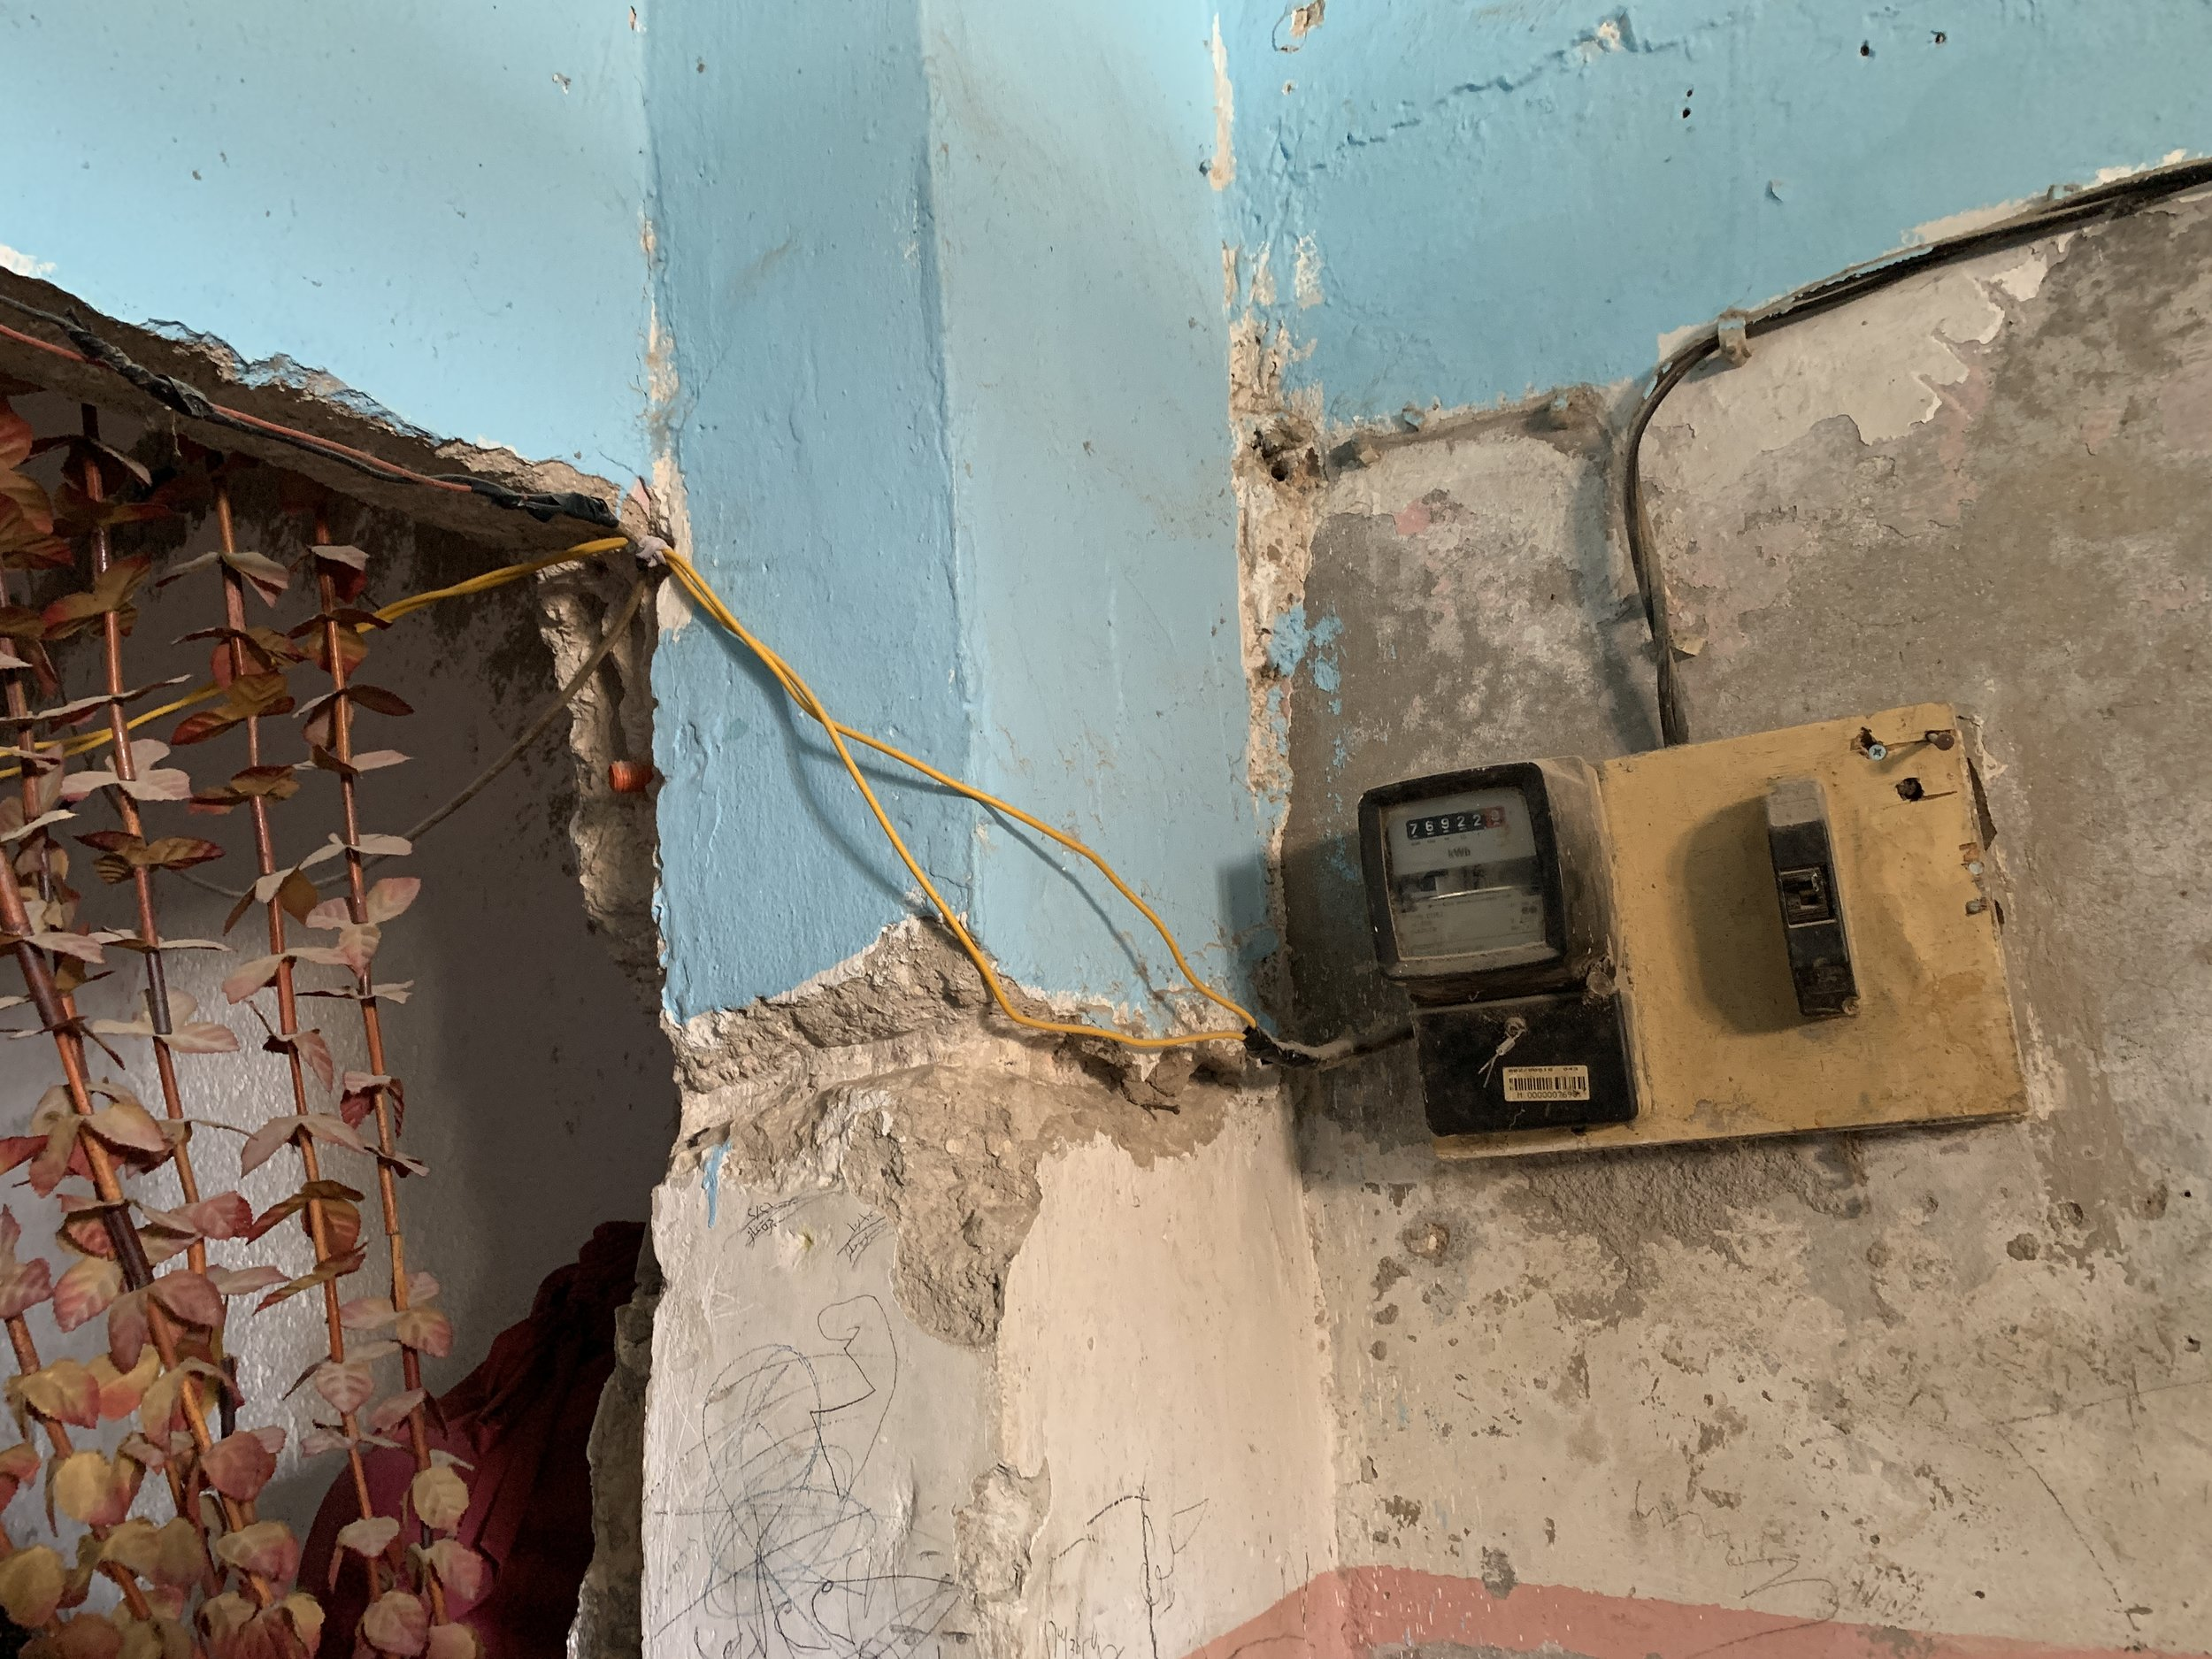 Let there be light! - Helping families by repairing their homes